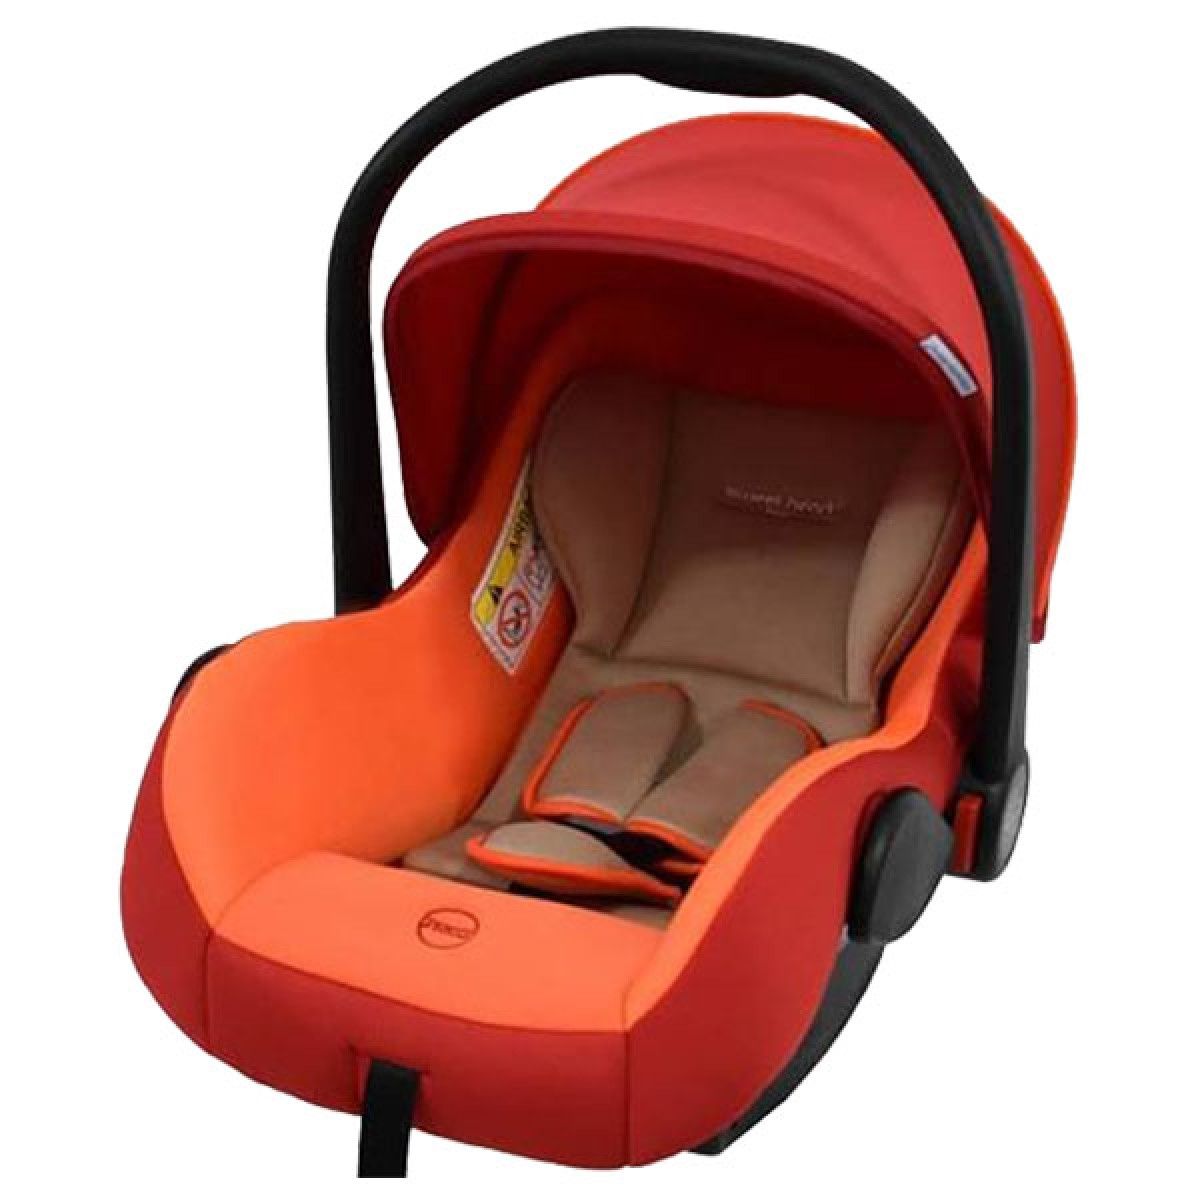 Sonata Infant Carrier Carseat - Kico Baby Center